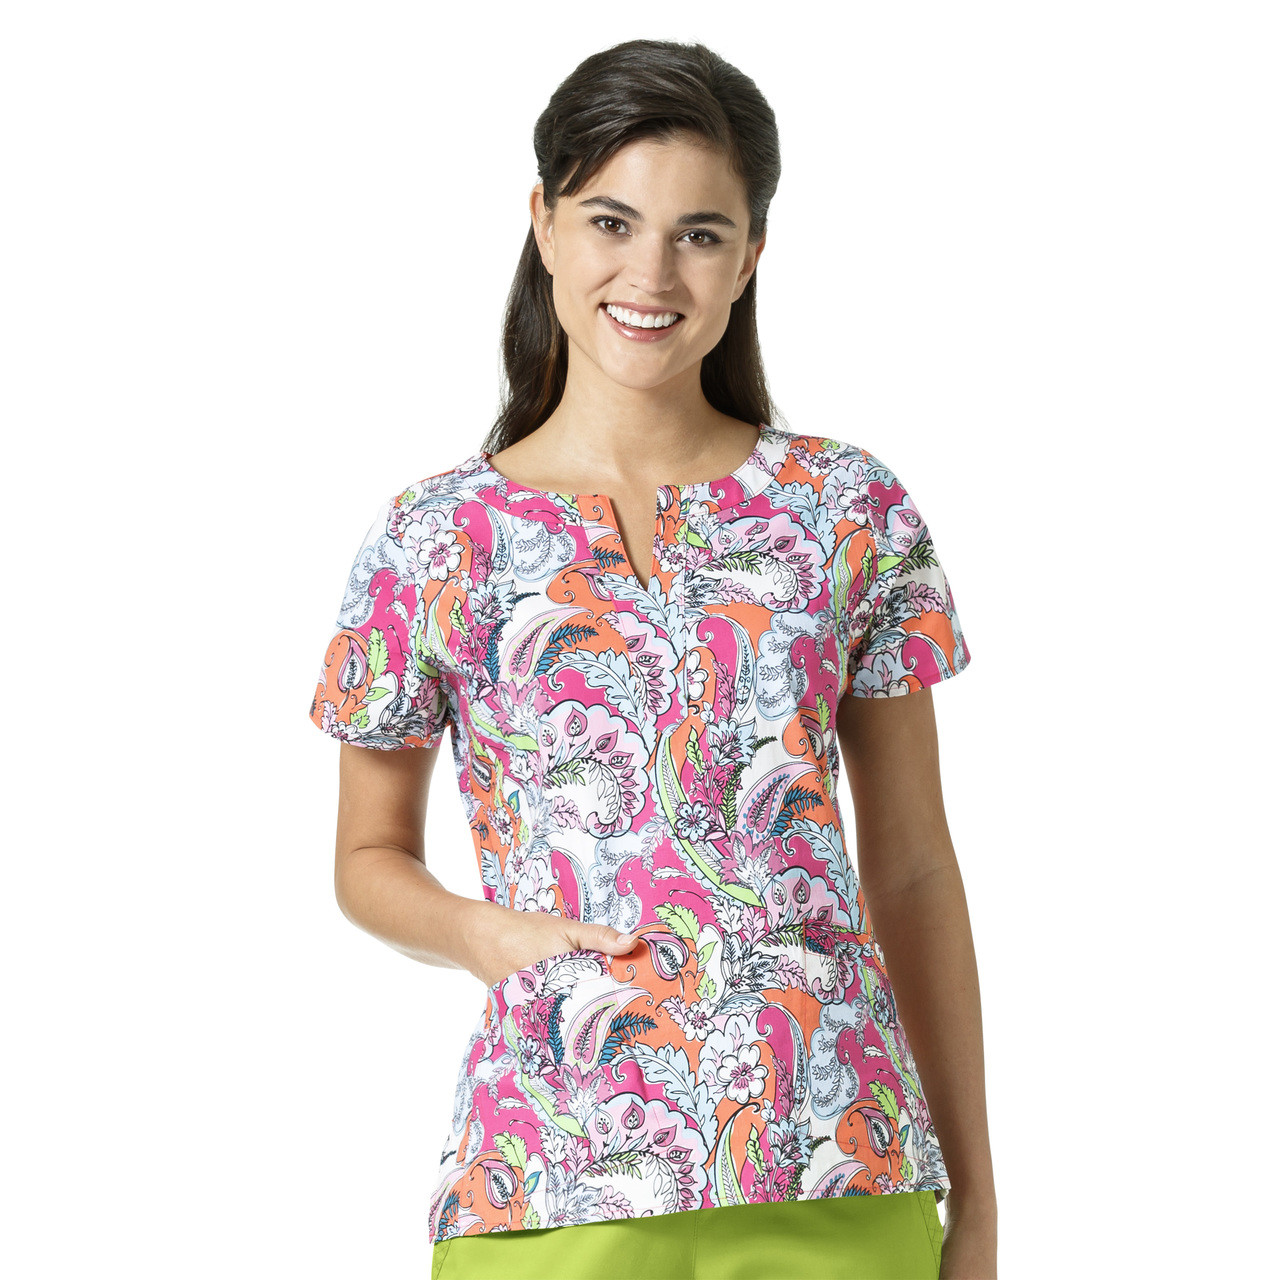 (V6207) Vera Bradley Signature Linda Notch Neck Print Scrub Top